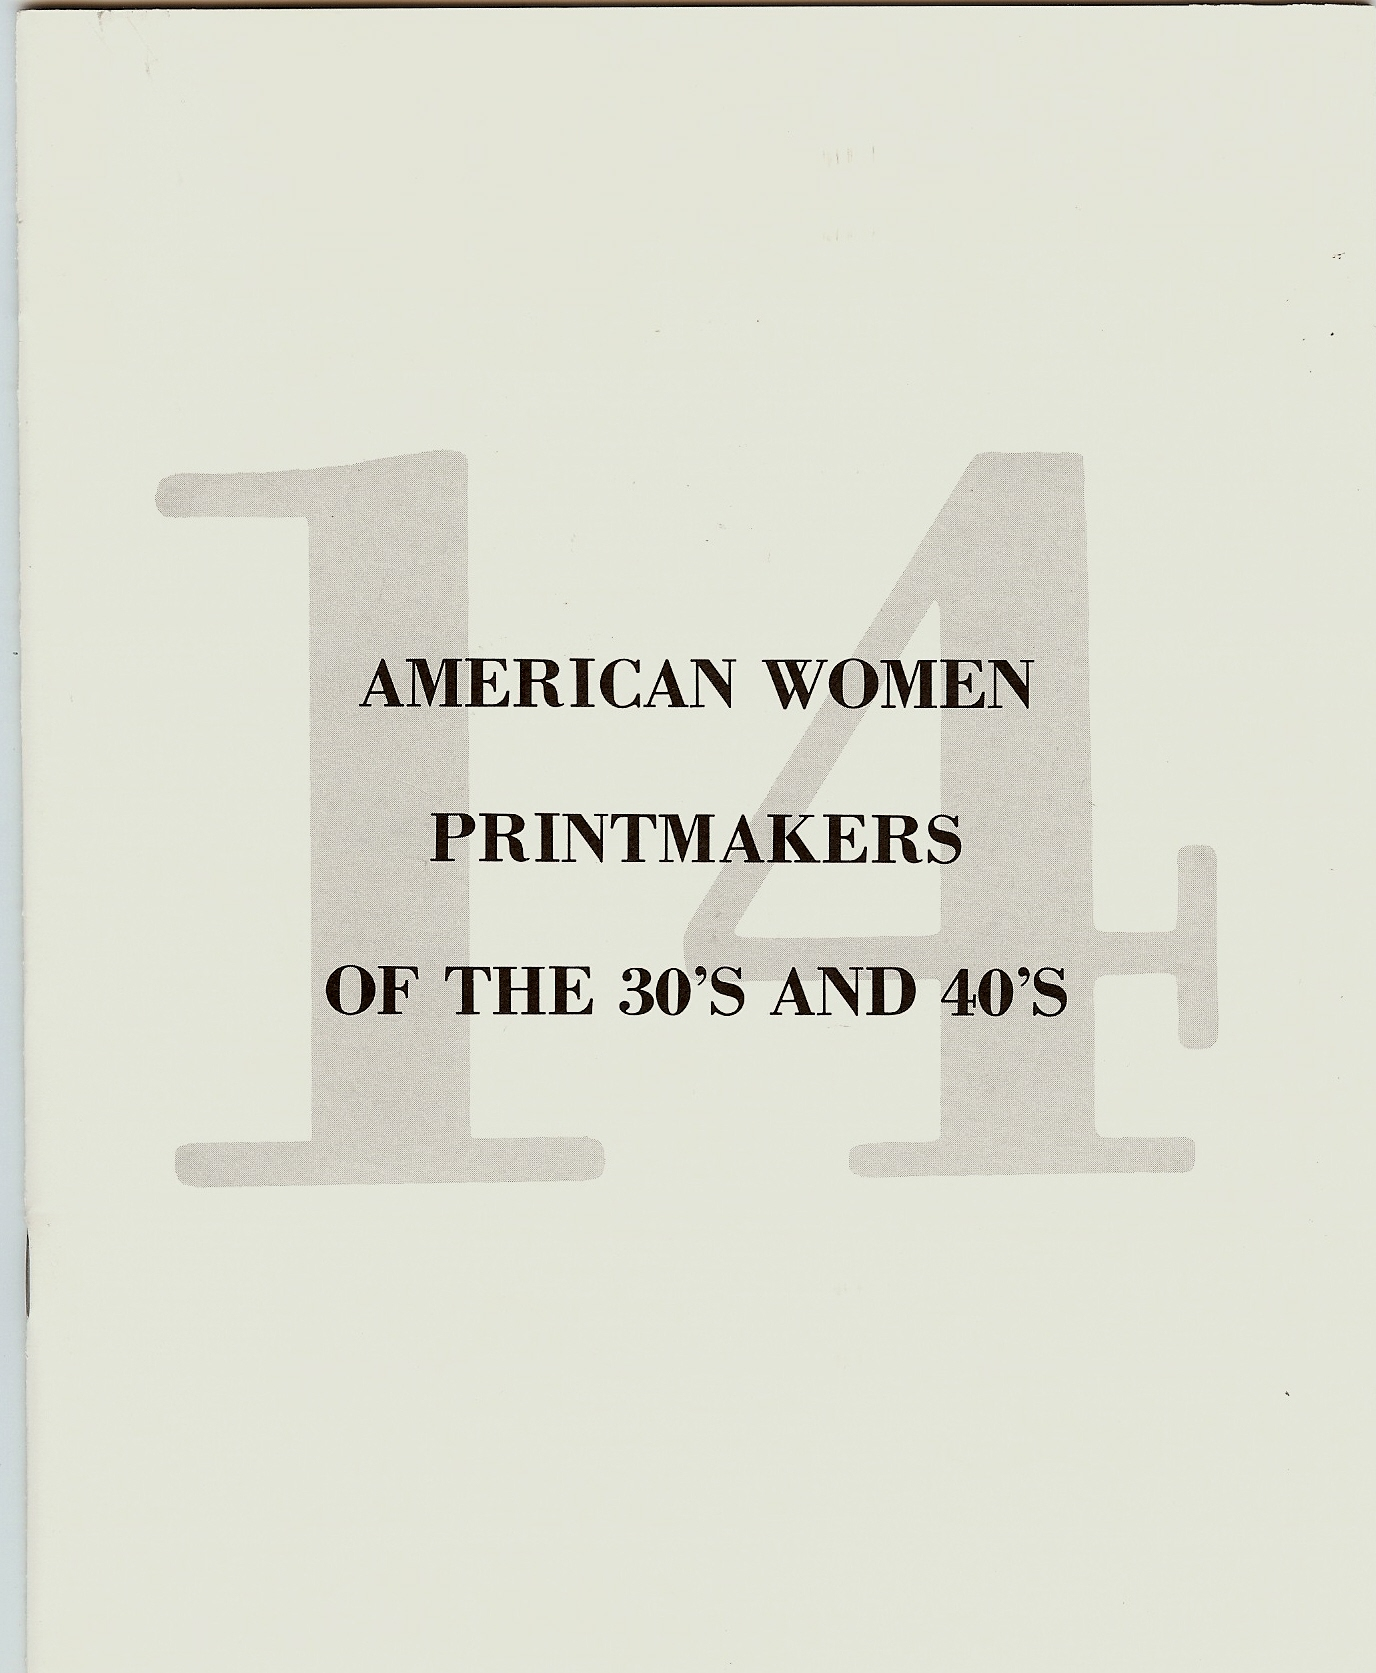 AMERICAN WOMEN PRINTMAKERS OF THE 30's AND 40's